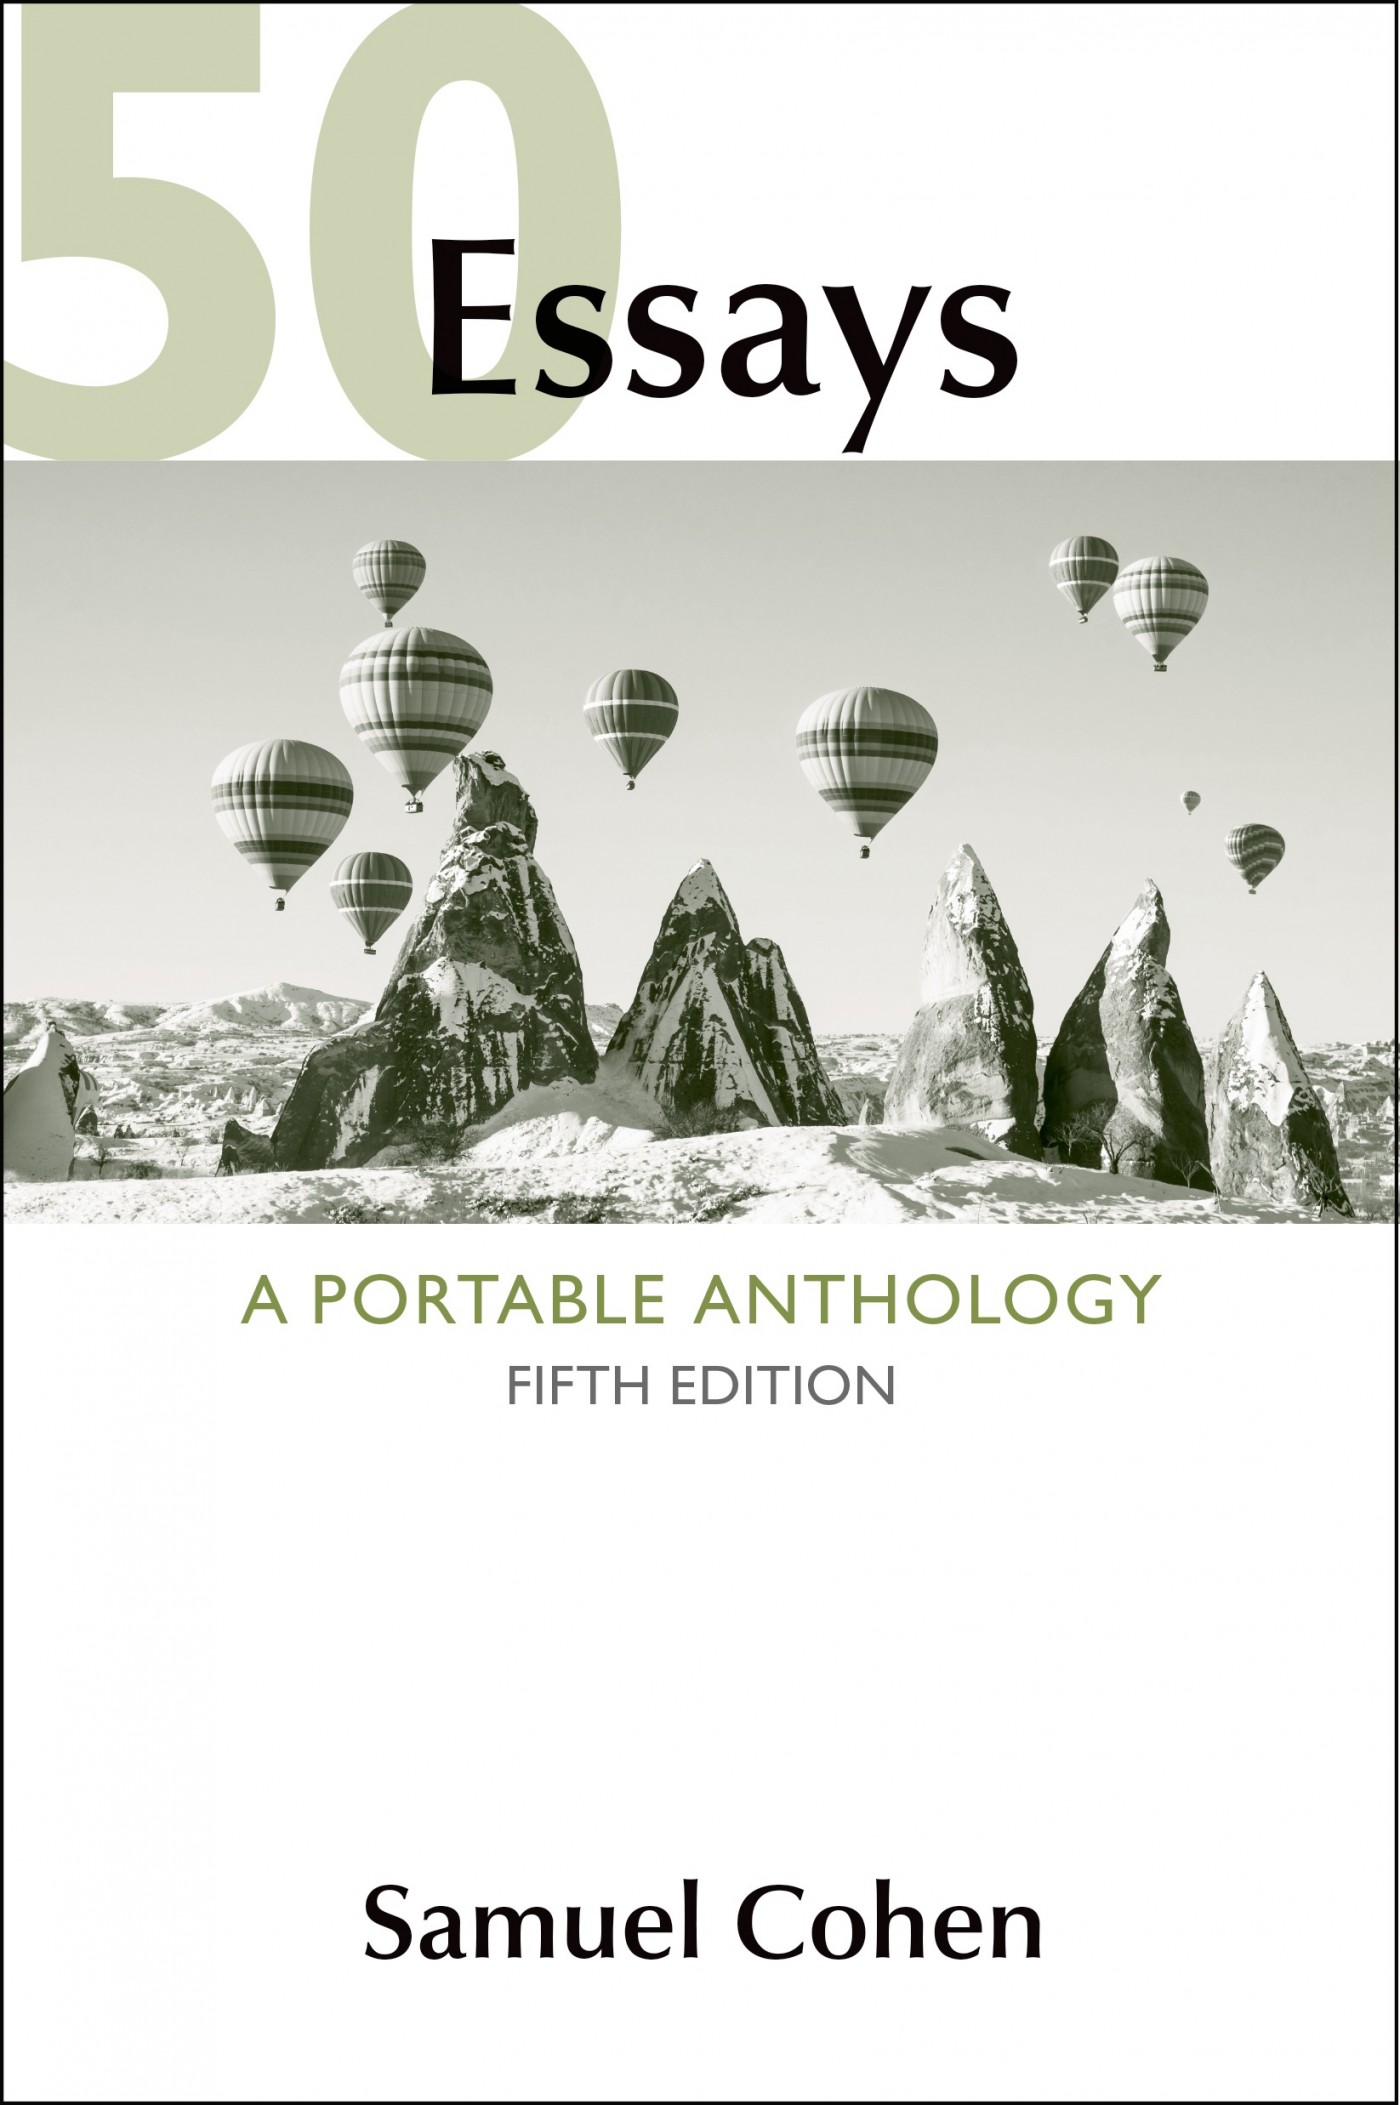 008 Essays Table Of Contents Essay Example Best 50 A Portable Anthology 4th Edition Great 1400